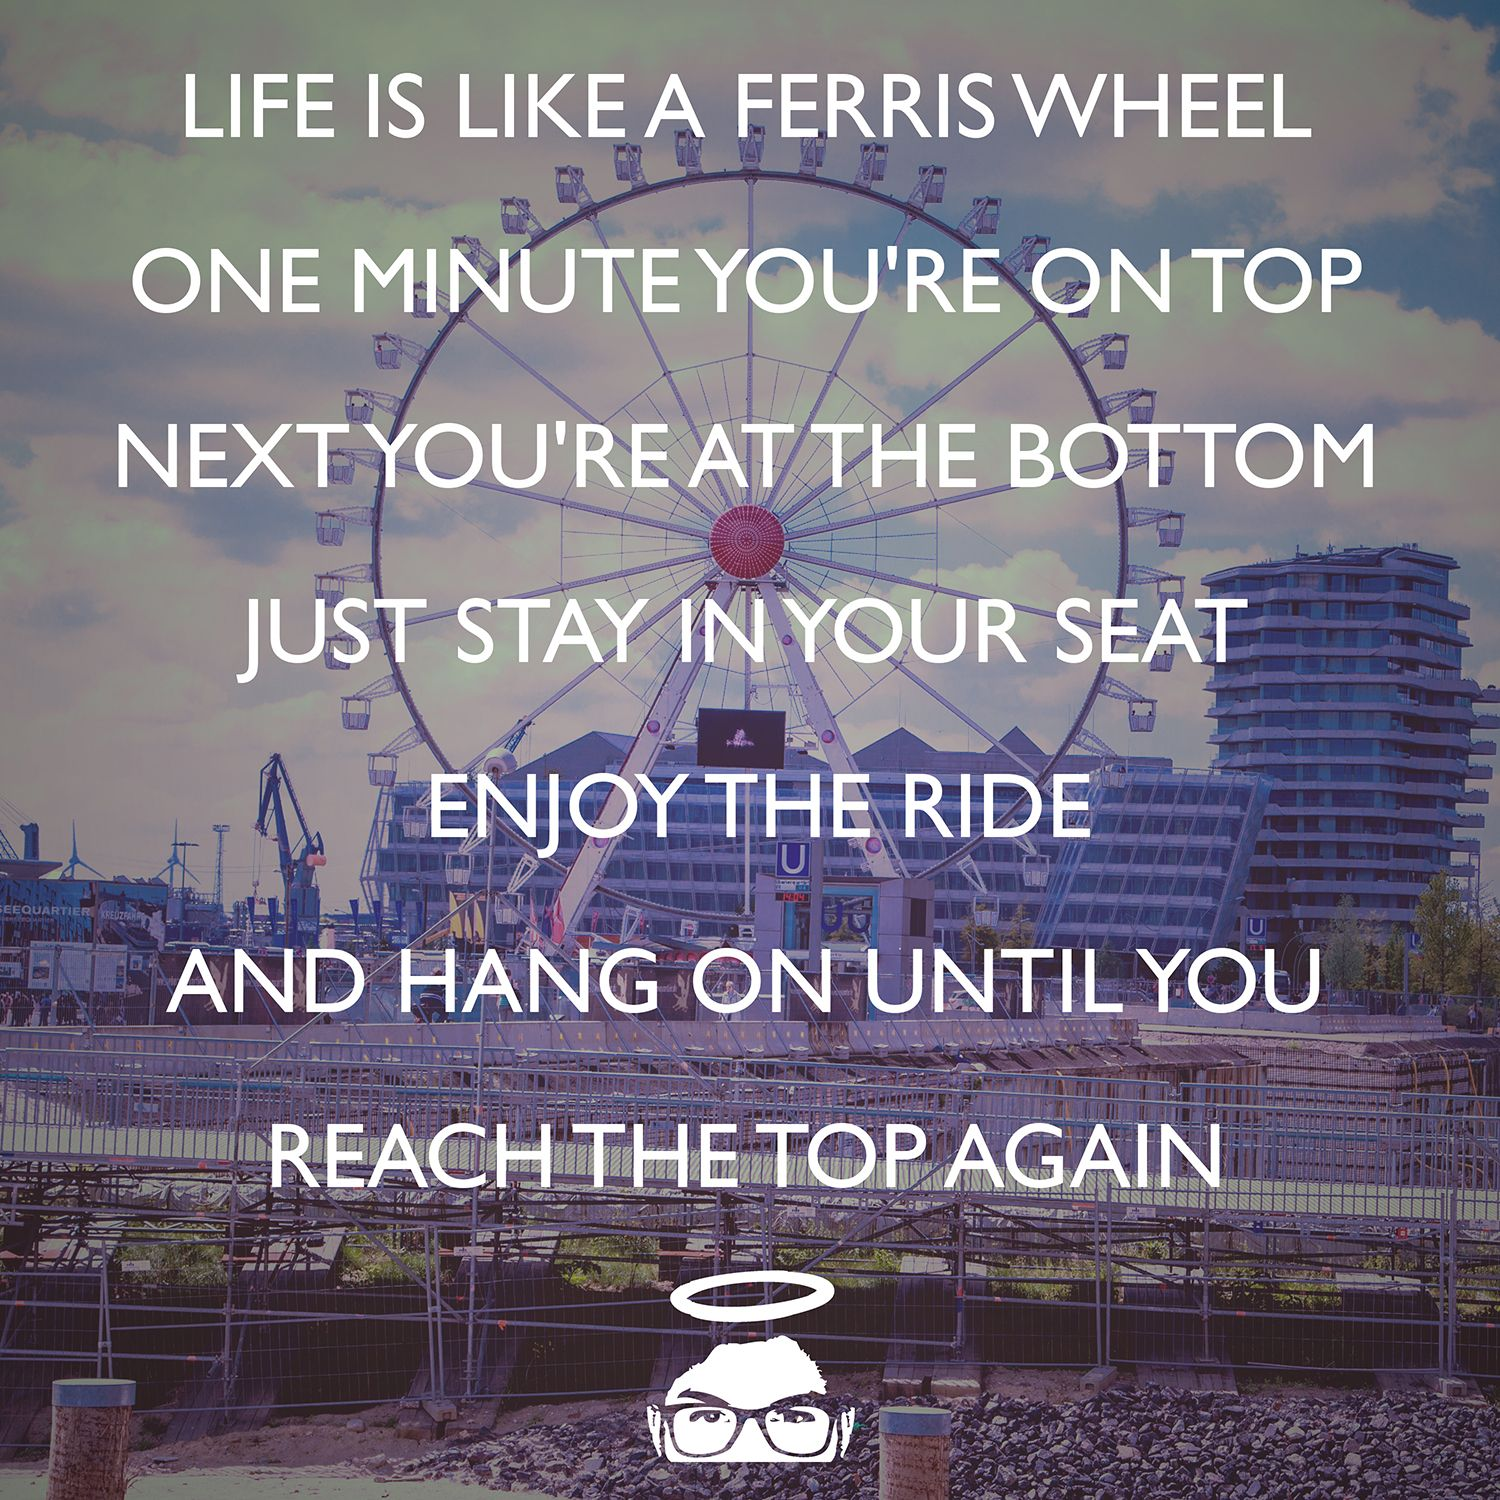 Life is like a Ferris wheel. One minute you're on top